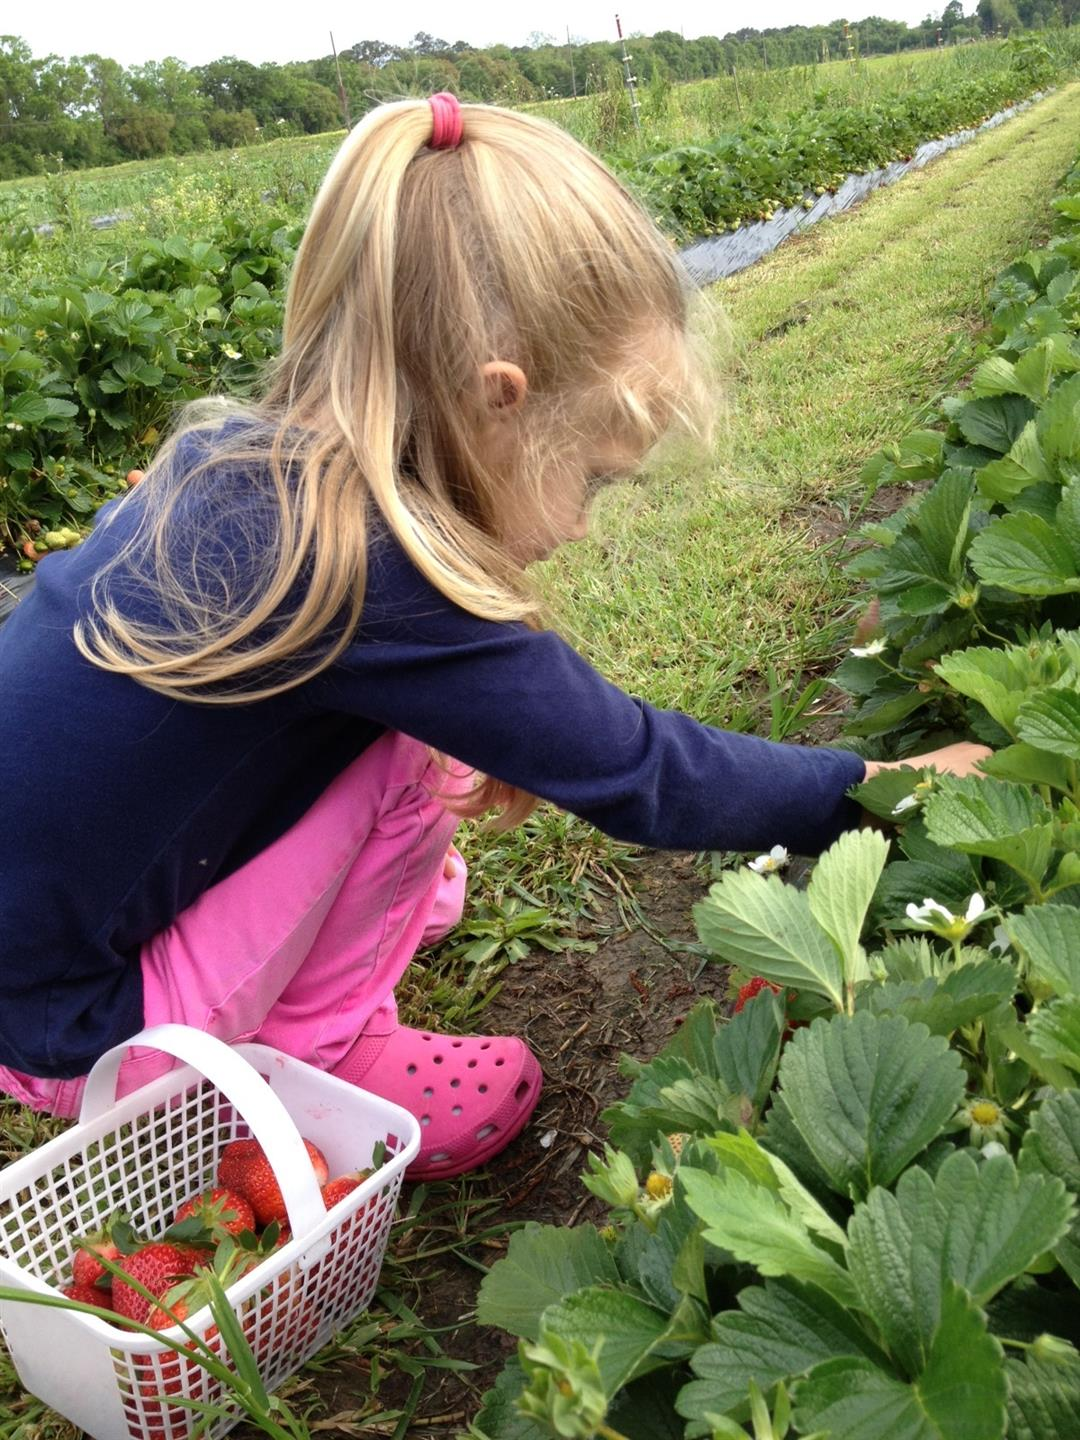 Small child picking strawberries